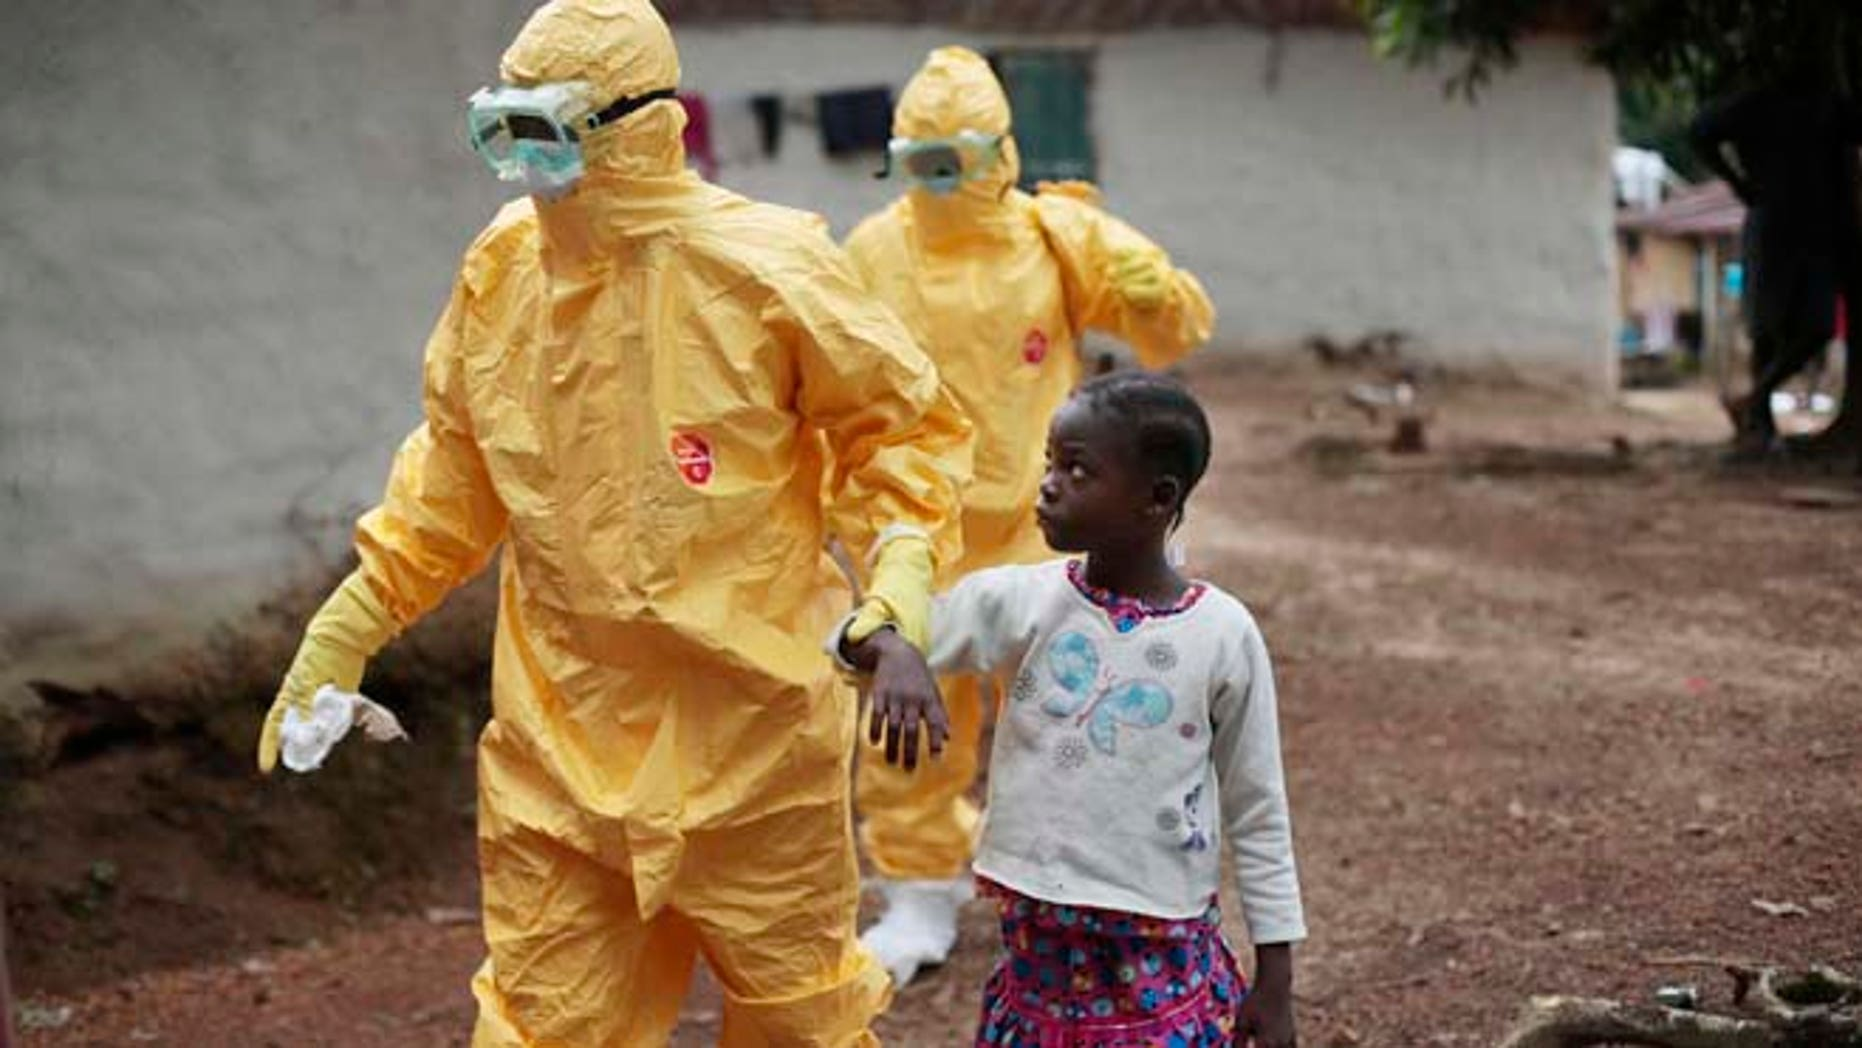 FILE 2014: Nine-year-old Nowa Paye is taken to an ambulance after showing signs of the Ebola virus disease in the village of Freeman Reserve, which is north of Monrovia, Liberia.